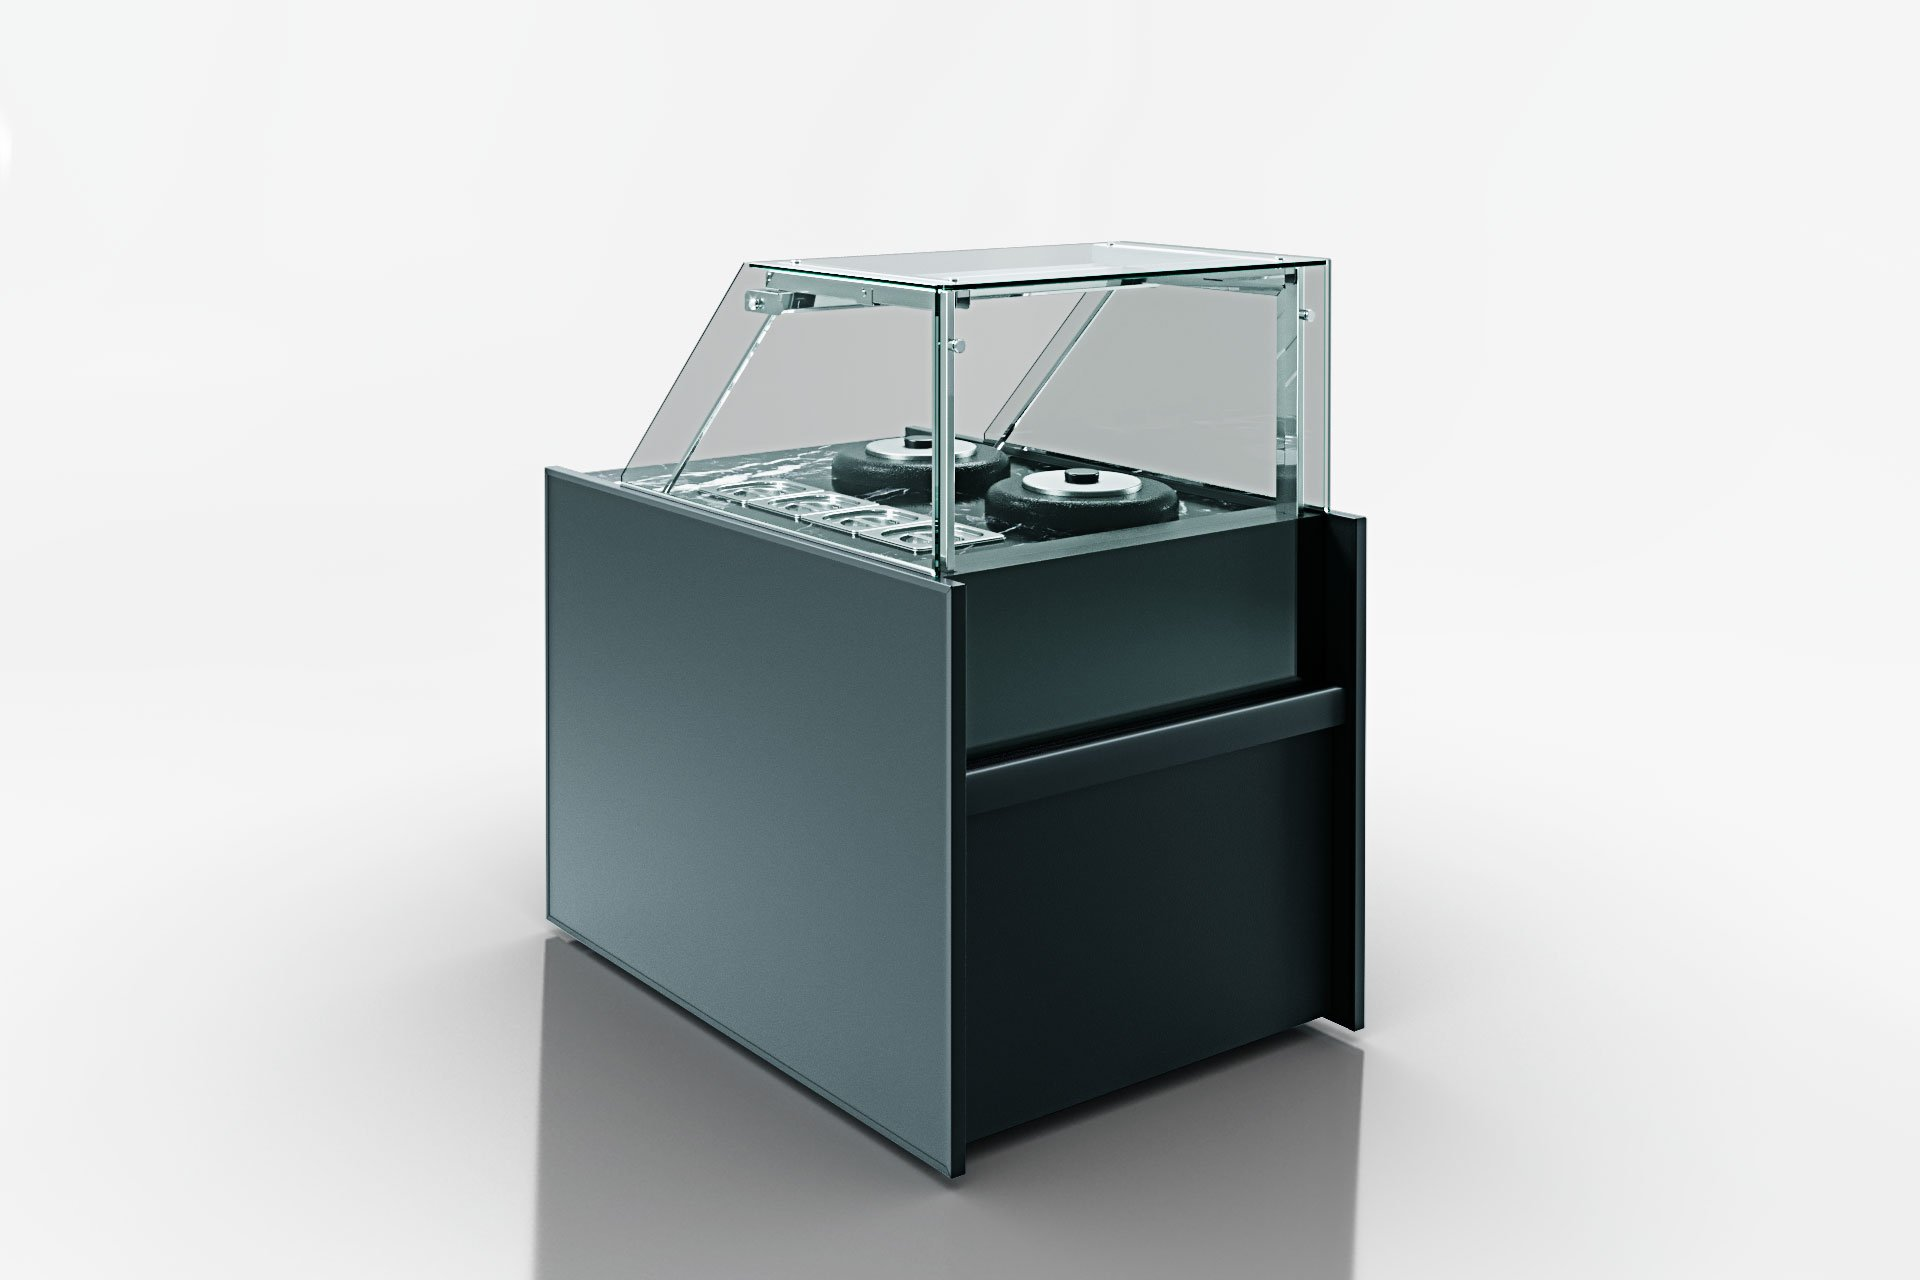 Refrigerated counters Missouri NC 120 tureen PP 130